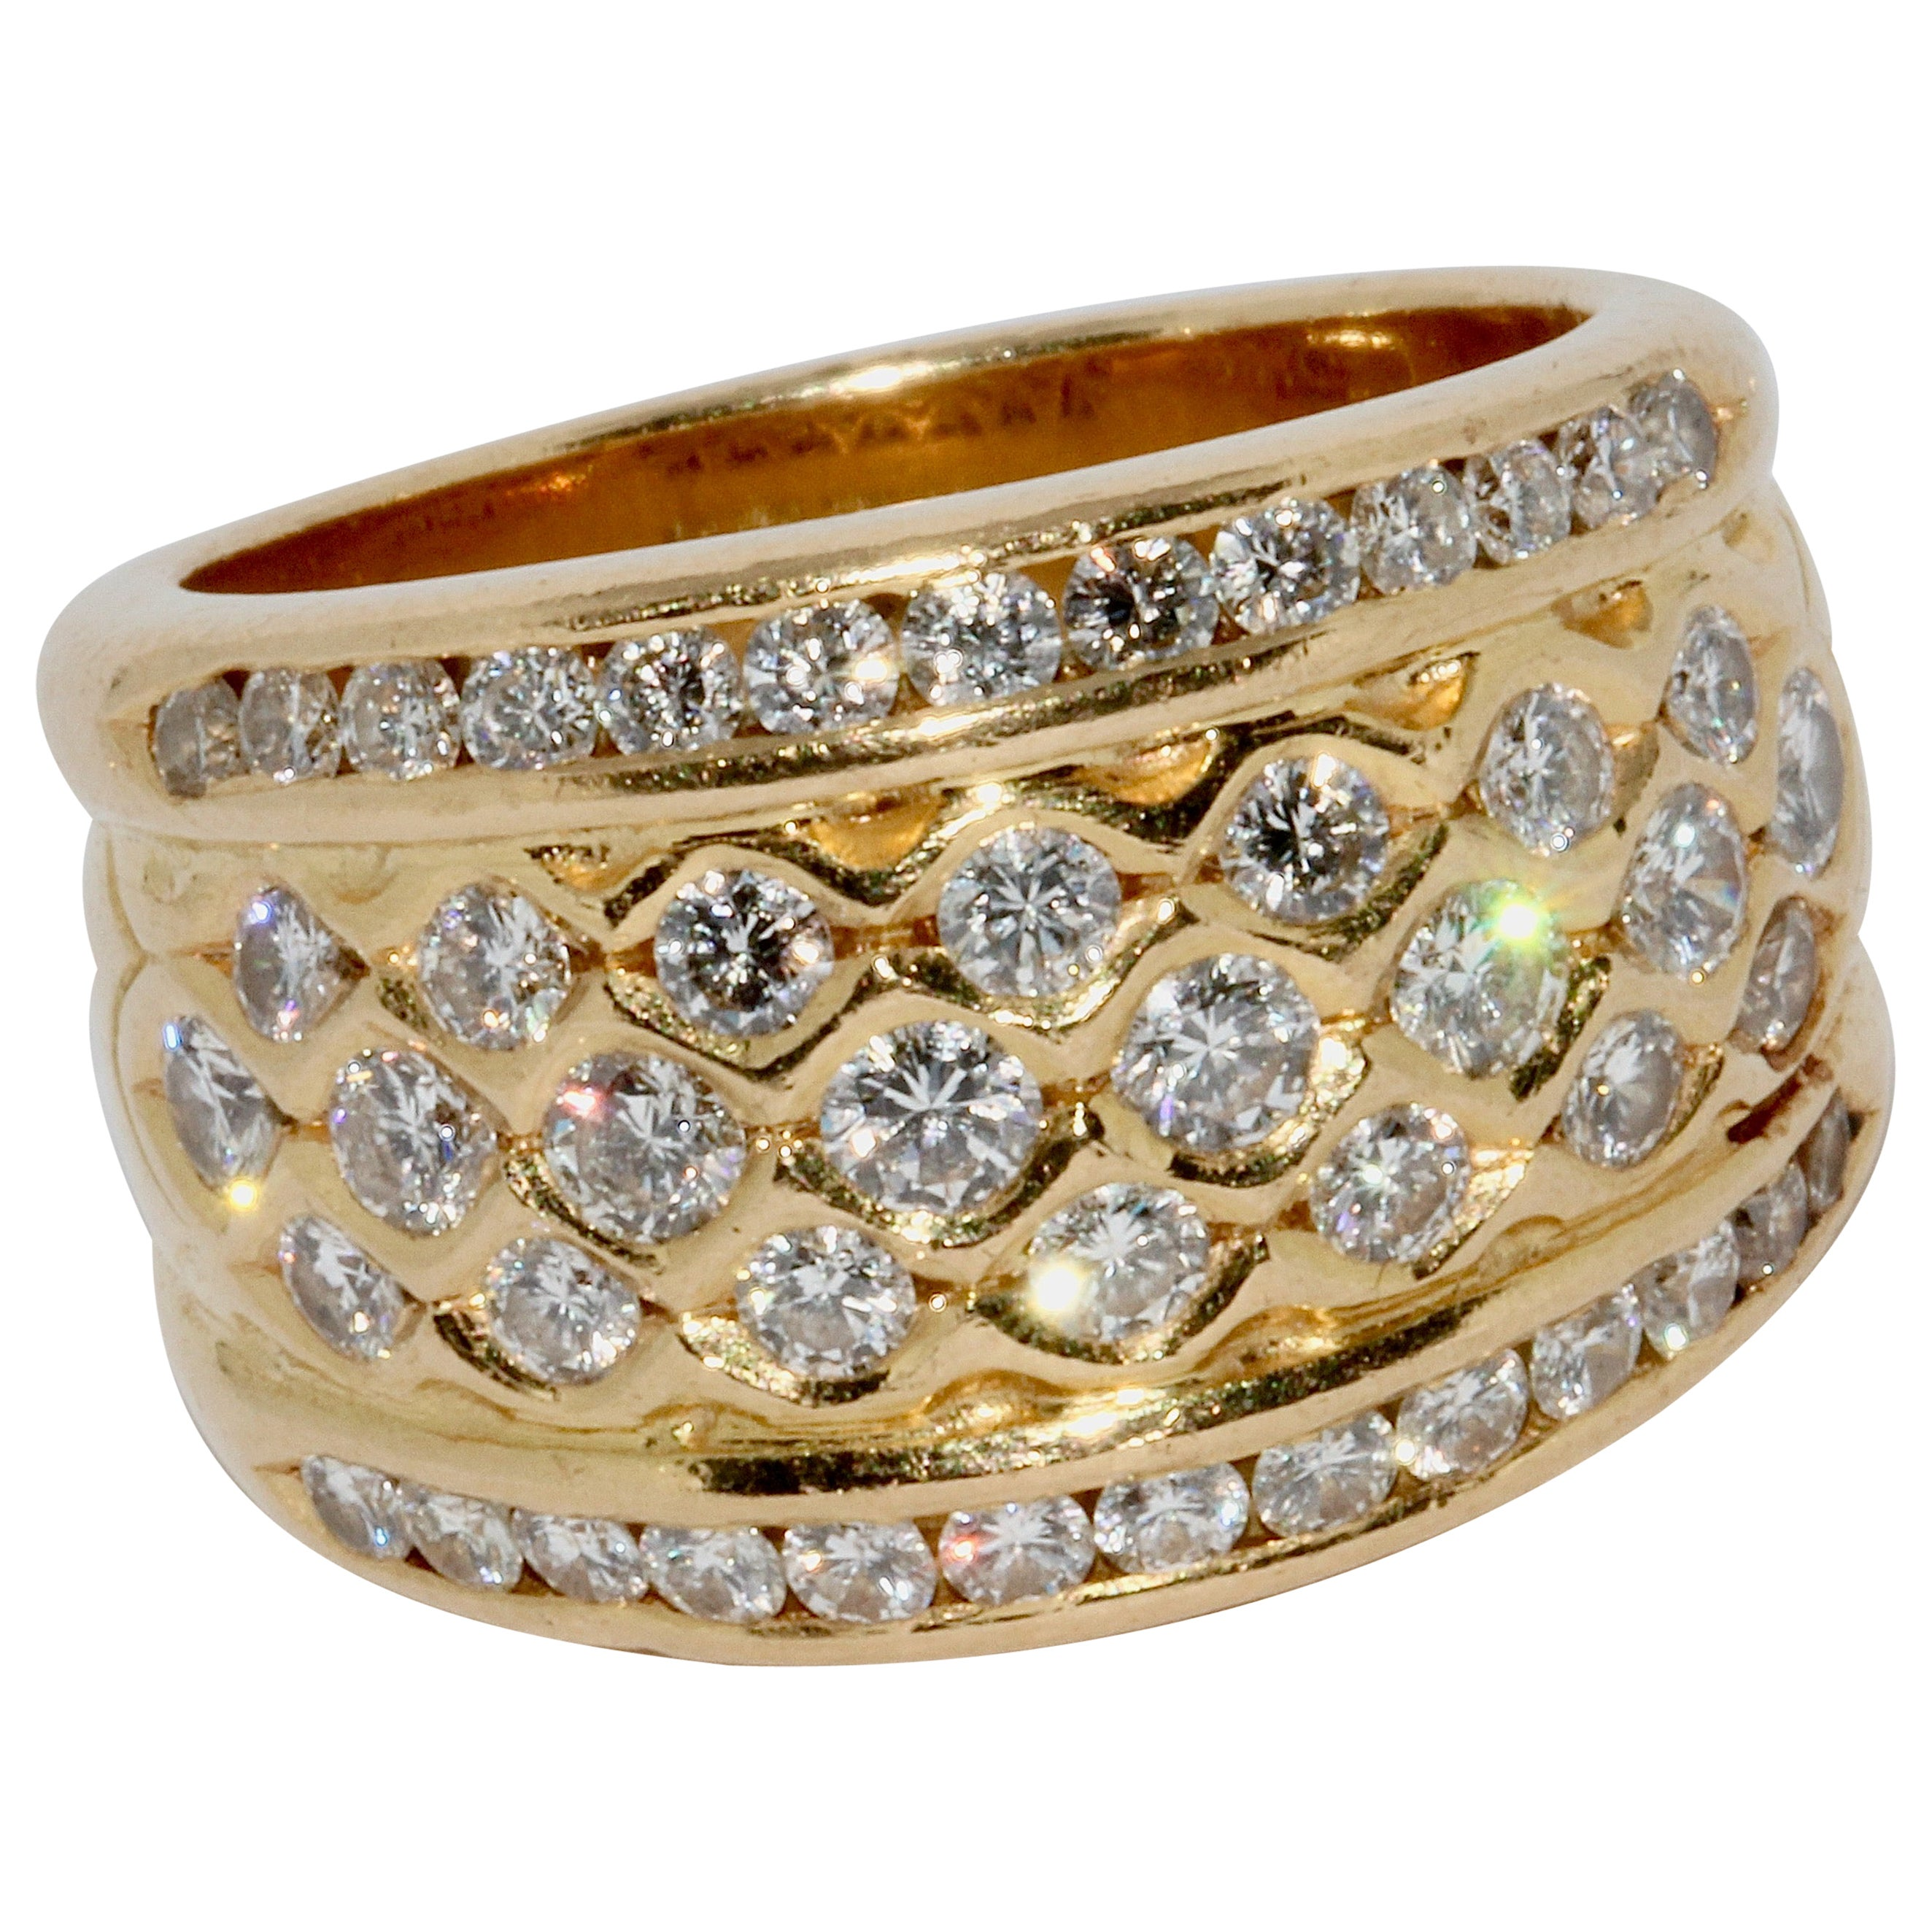 Ladies Dome Ring, 18 Karat Solid Gold with White Diamonds